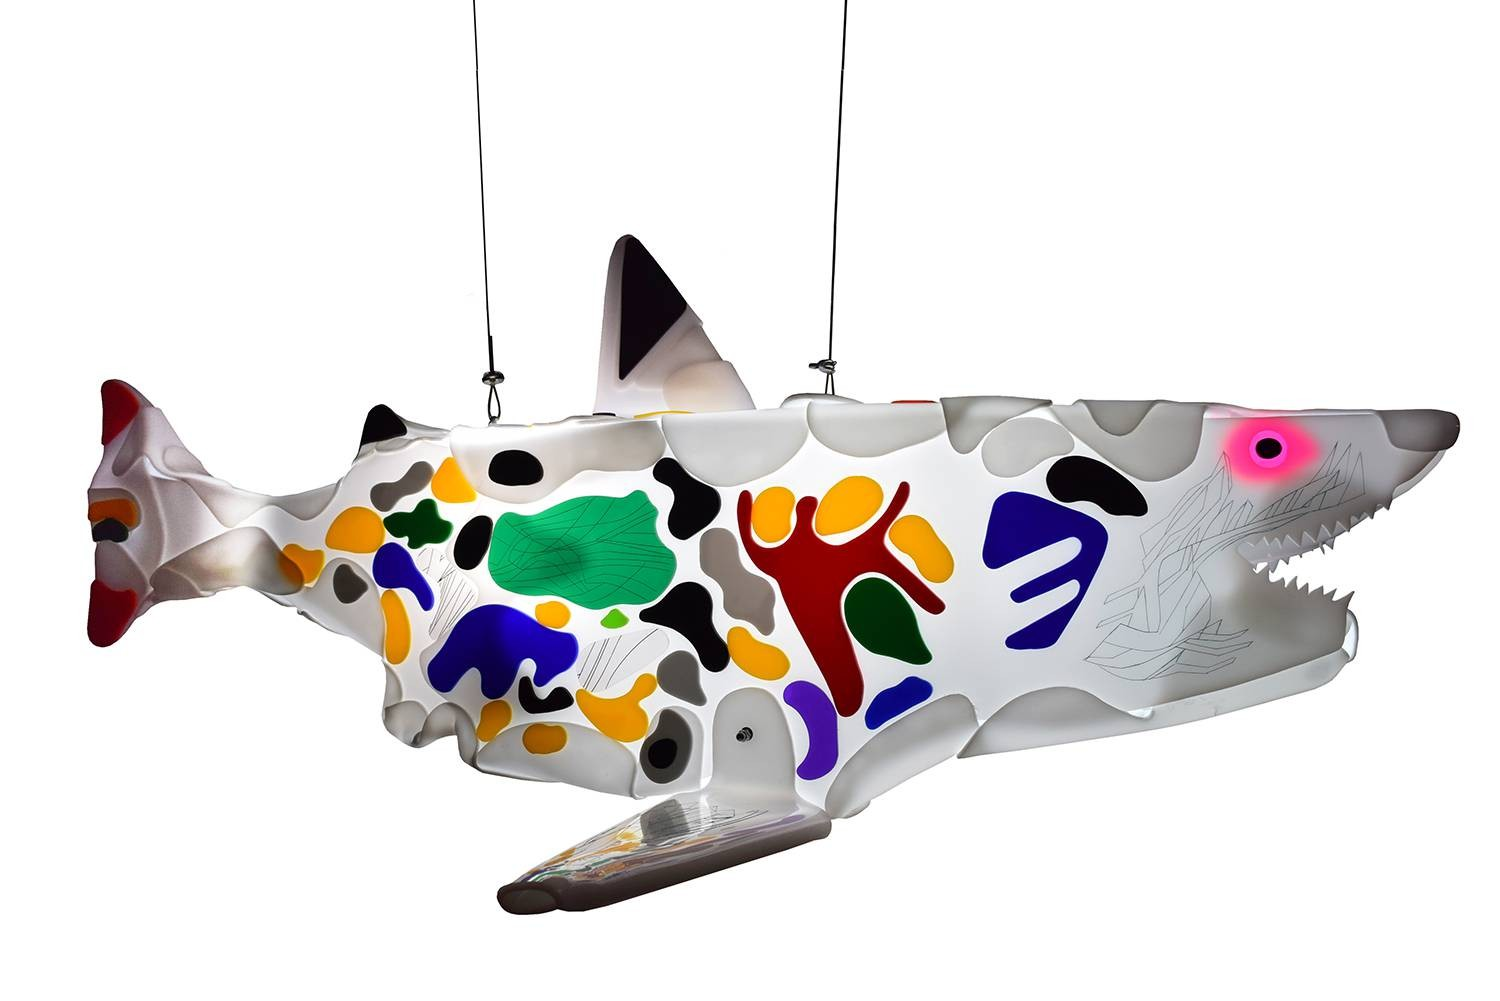 Guided by instinct 2 is one of shark light sculptures.